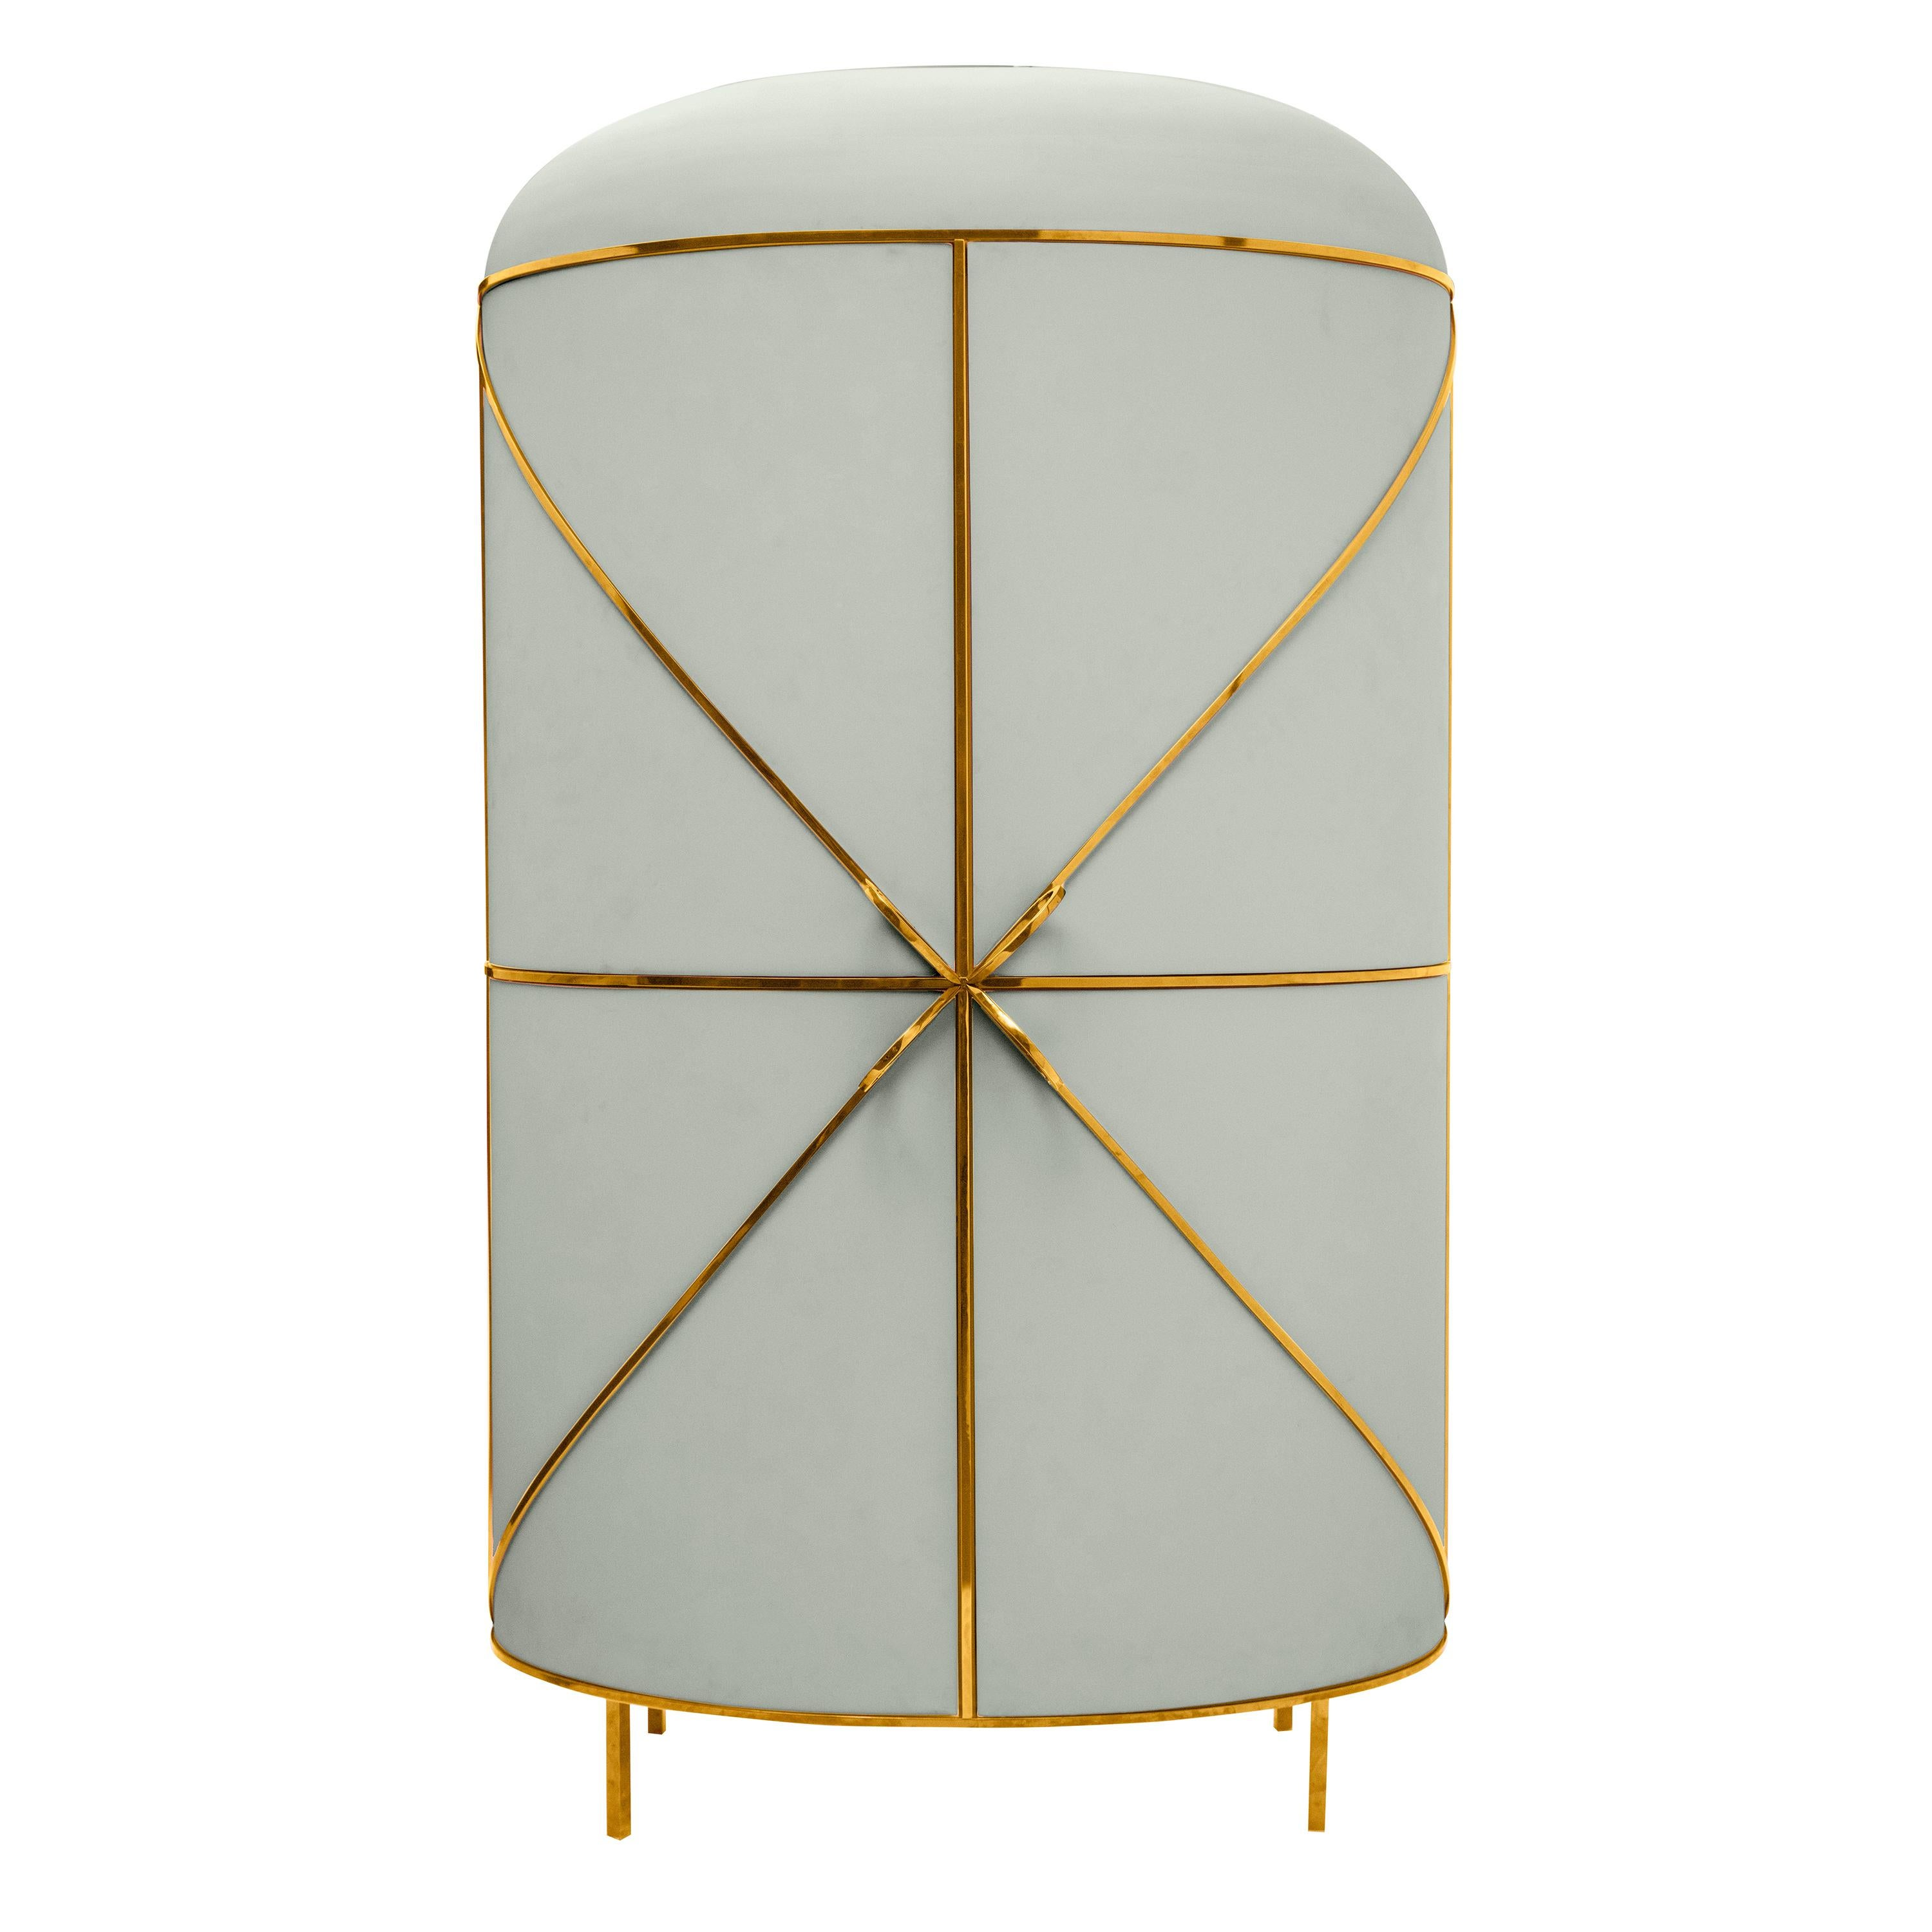 88 Secrets Gray Bar Cabinet with Gold Trims by Nika Zupanc